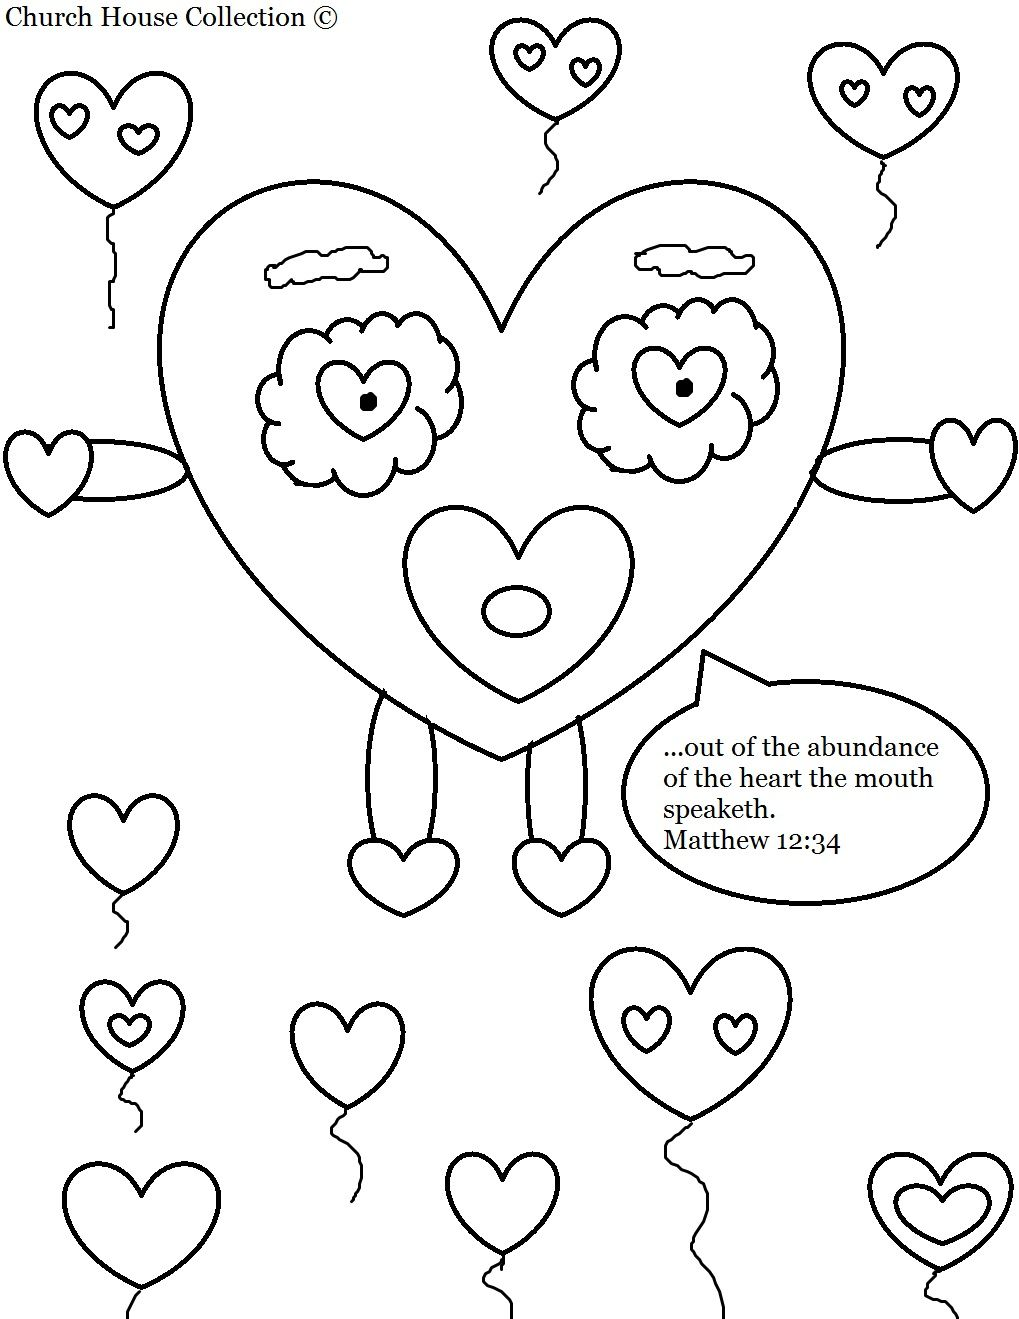 Church House Collection Blog: Valentine's Day Heart ...